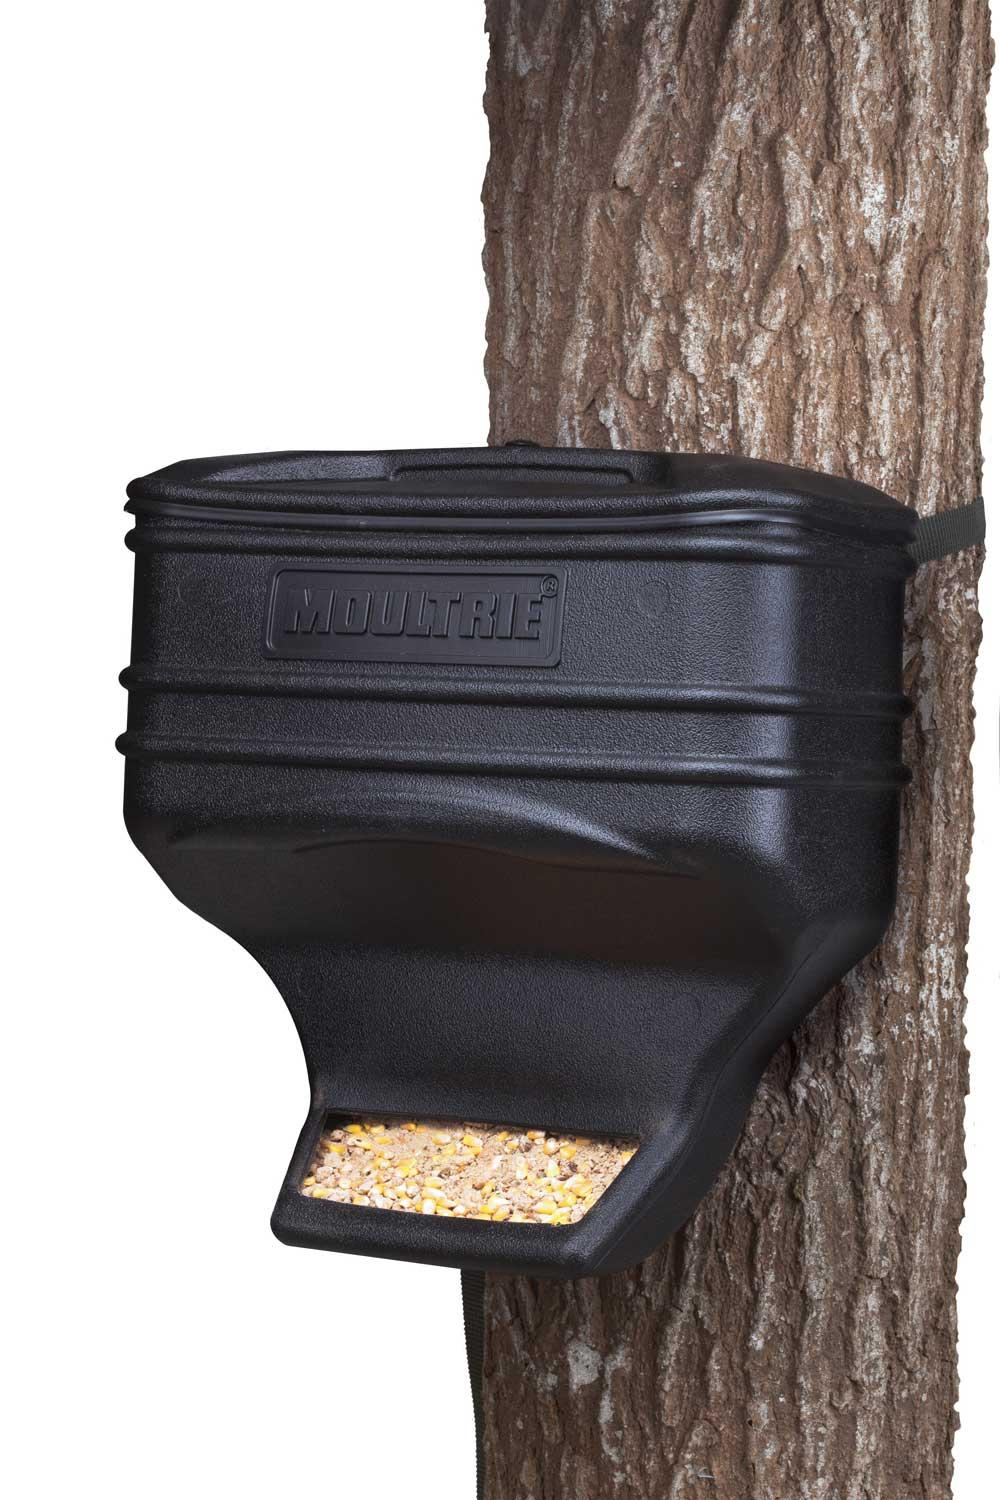 Moultrie Feed Station Gravity Deer Feeder_1.jpg